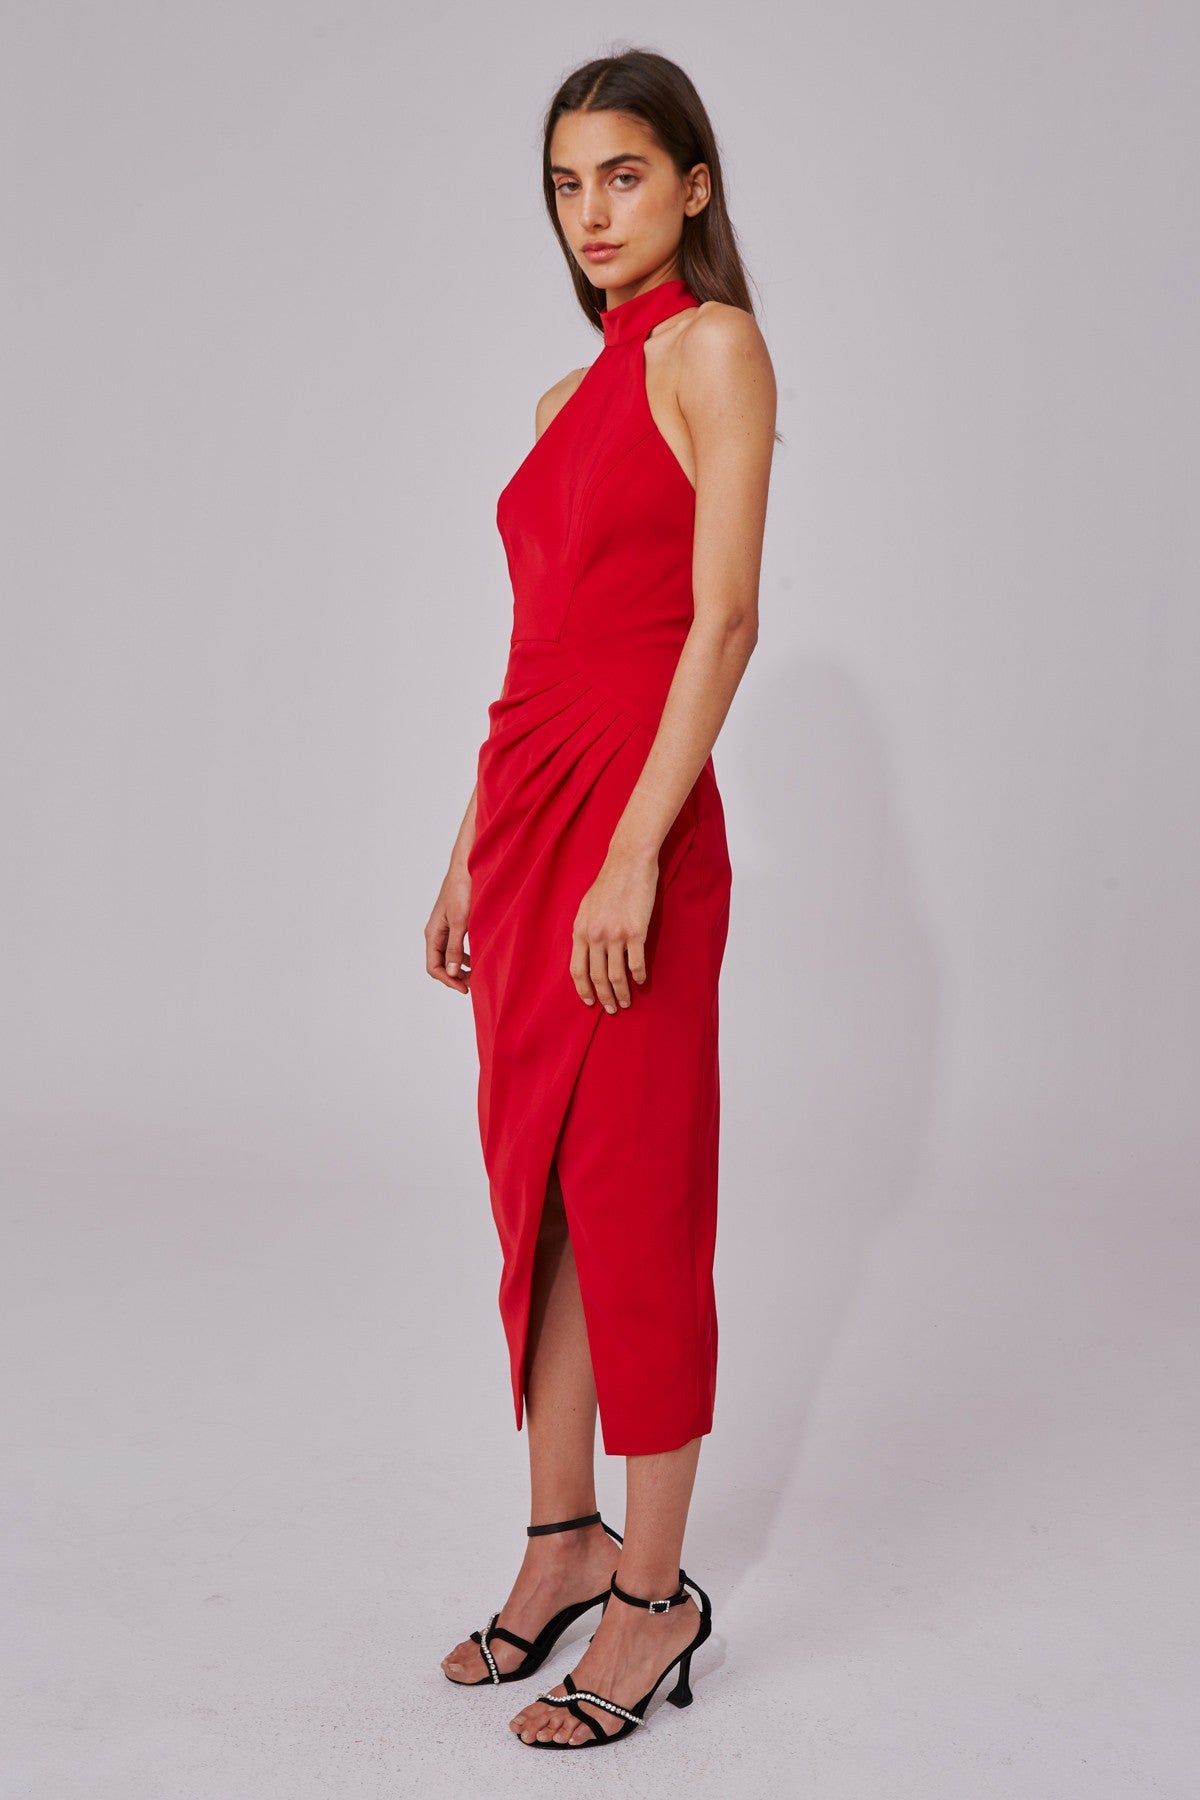 CALIBER DRESS red